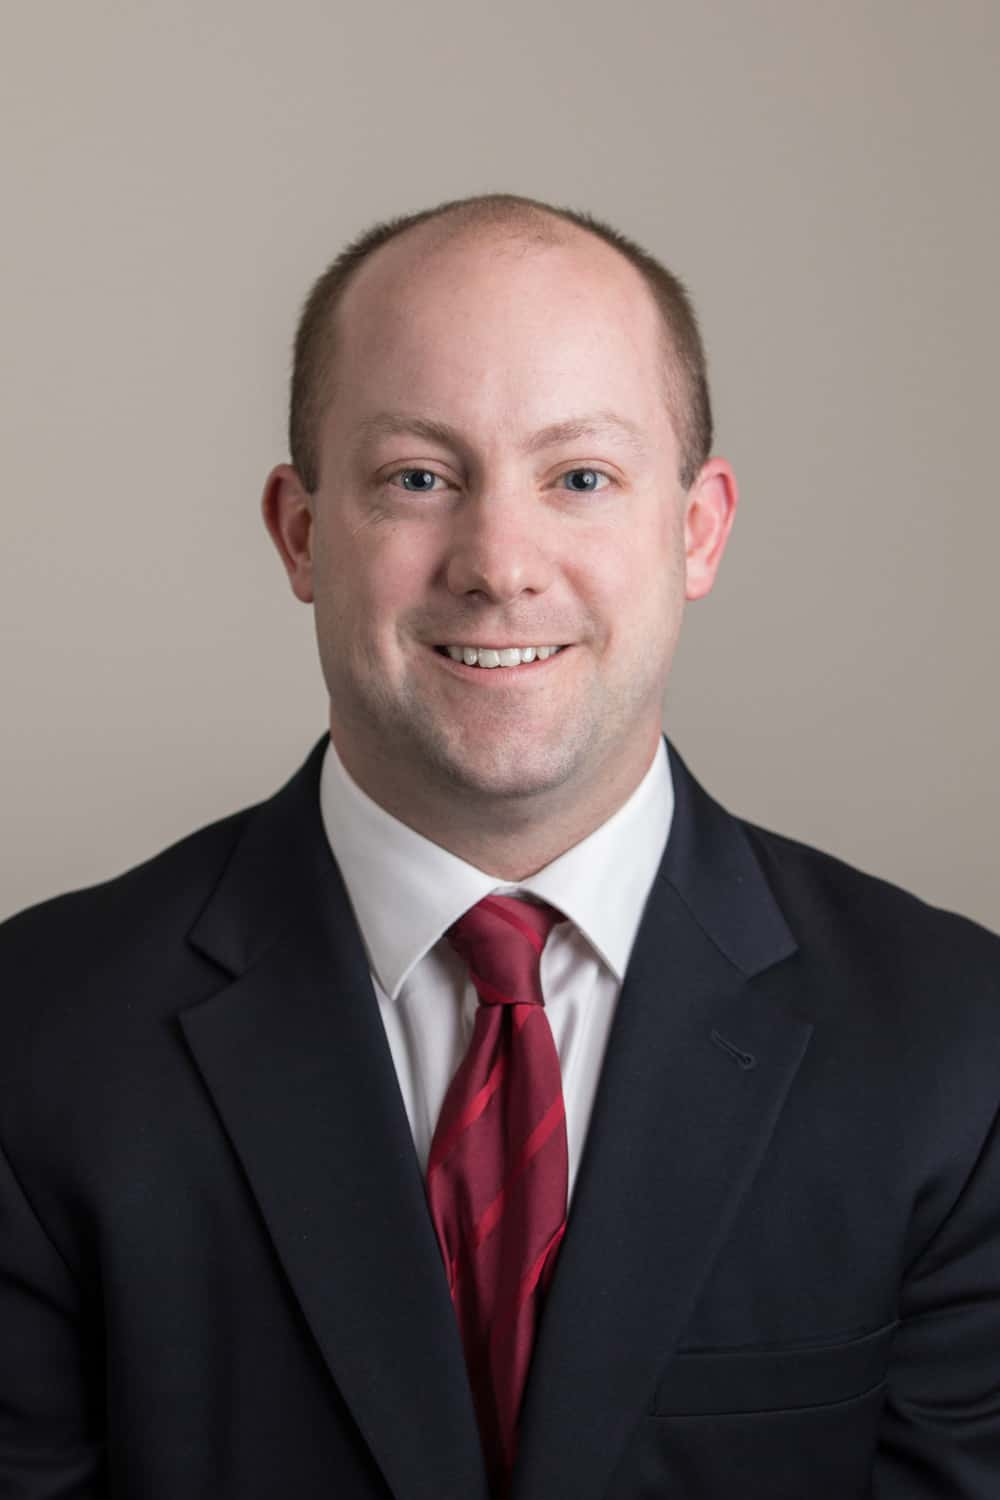 Seth Tipton Discussed Legal Cannabis at HFMA – New Jersey Chapter Institute